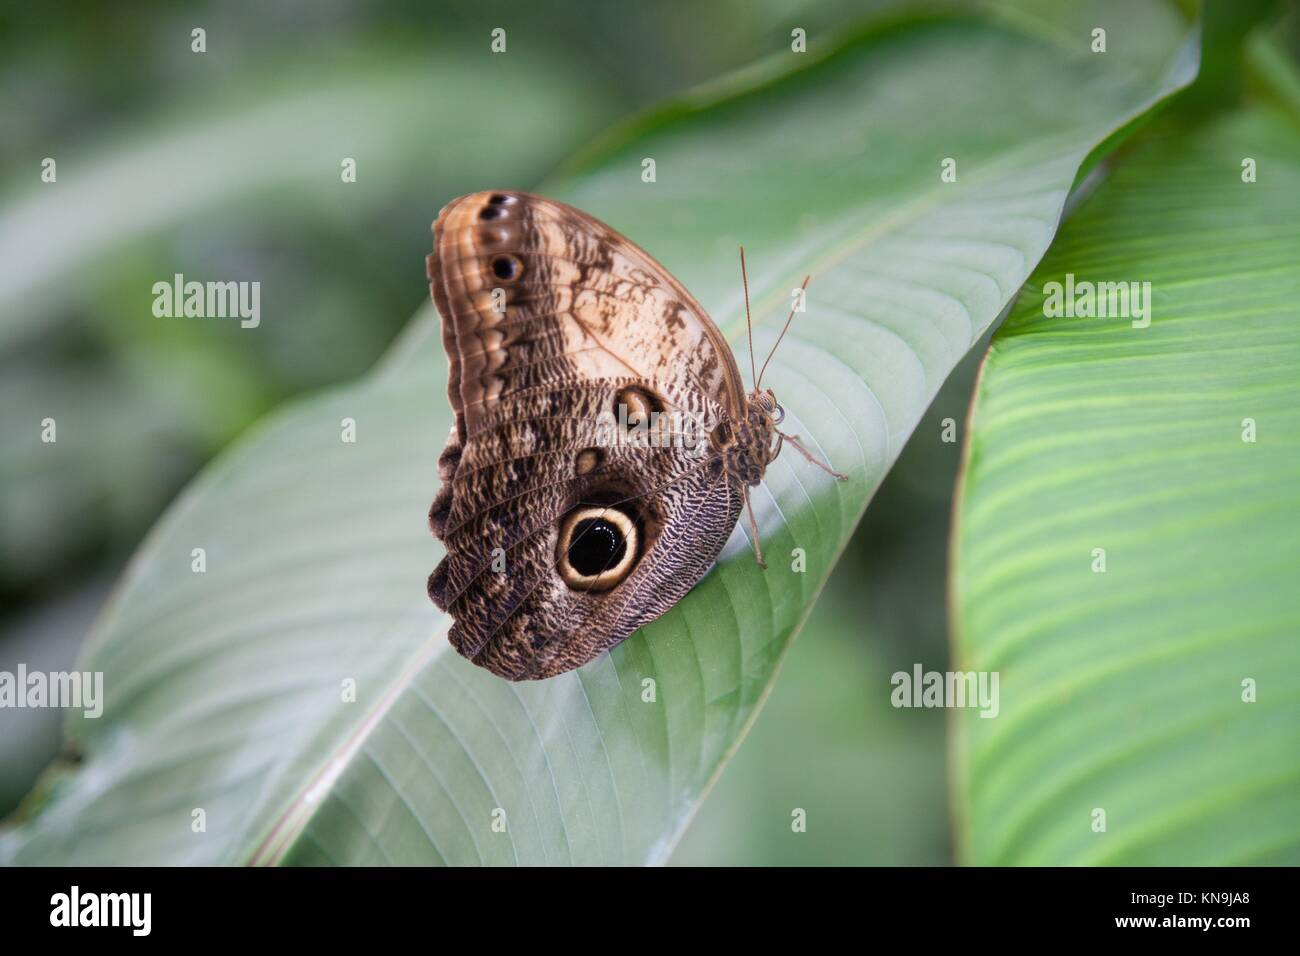 beautiful tropical brown with black circles iridescent butterfly named Morpho peleides, from Nymphalidae family, - Stock Image